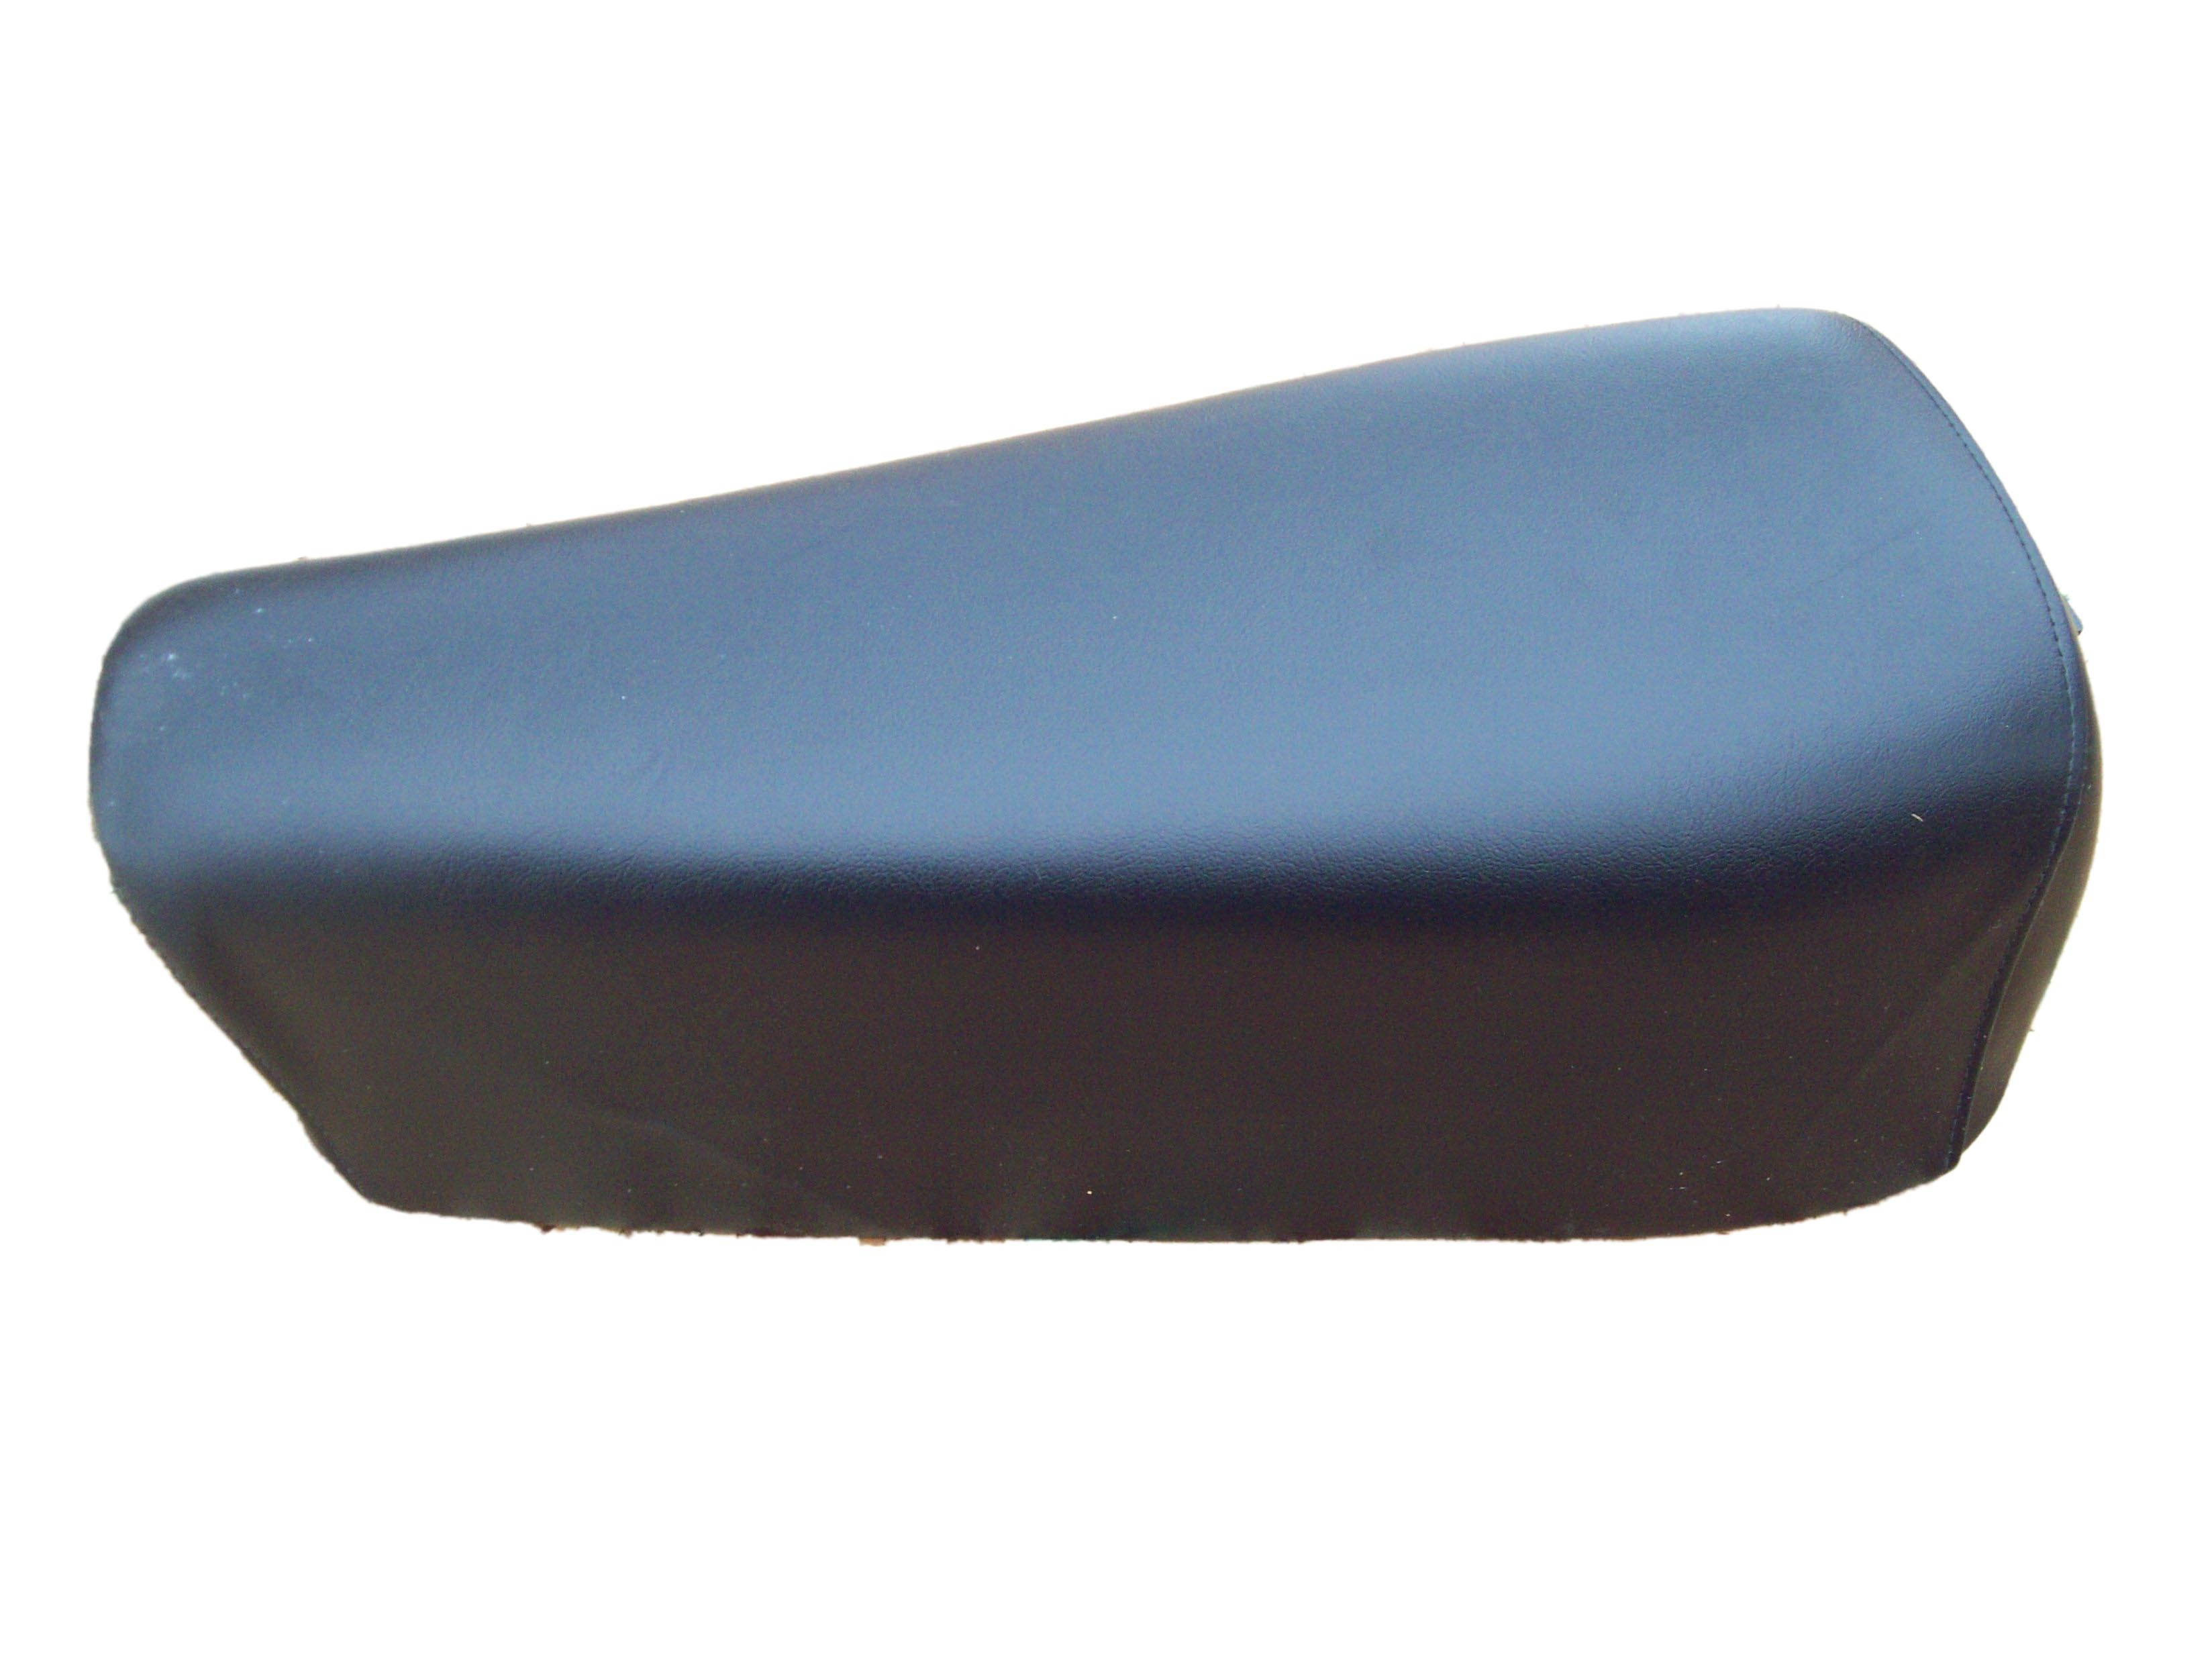 1975 1976 Maico AW 250 400 Complete Seat Foam Cover Base